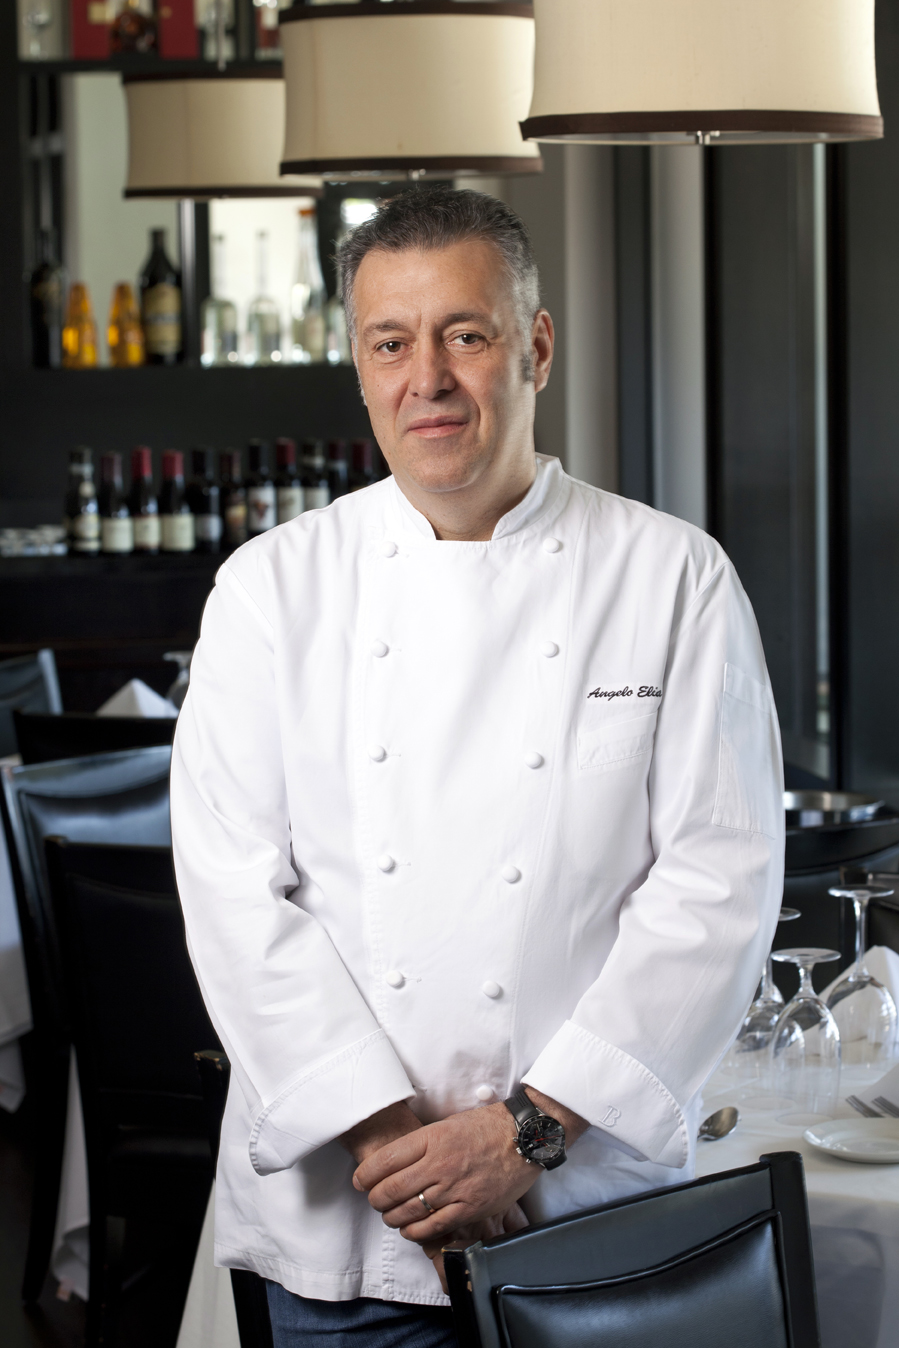 Chef Angelo Elia